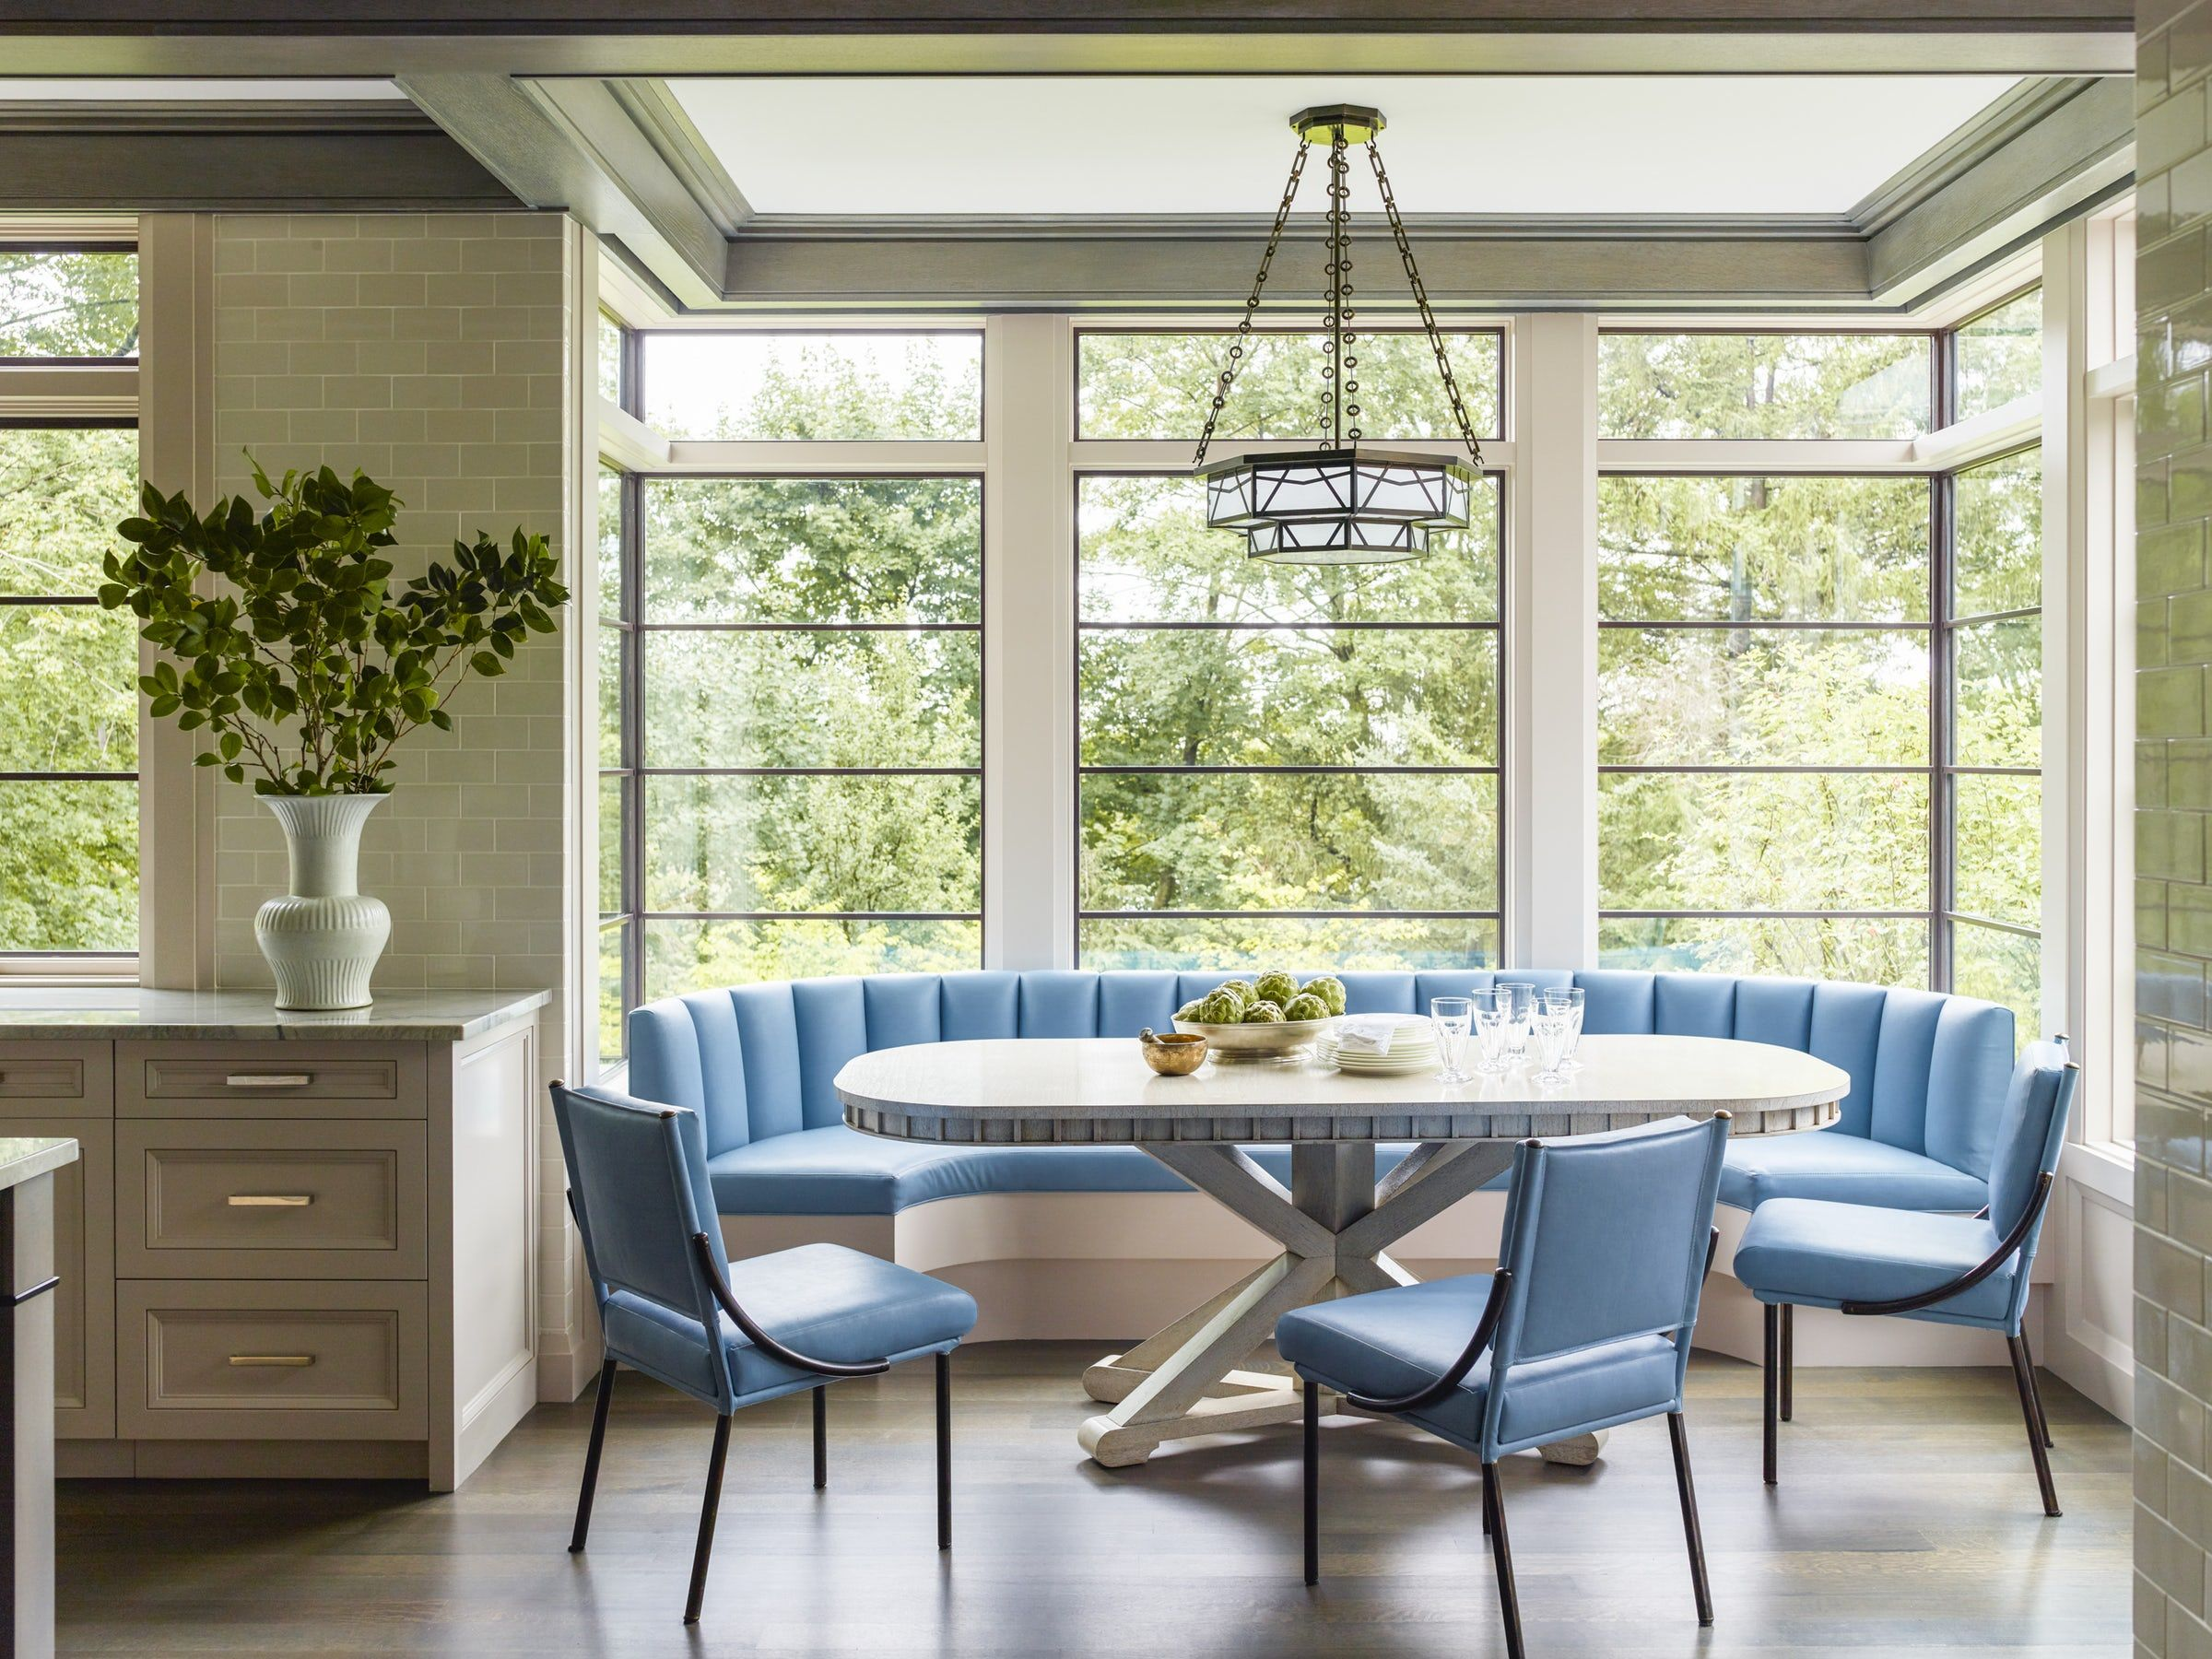 Picture of: 25 Charming Banquette Seating Ideas Gorgeous Kitchen Banquette Photos